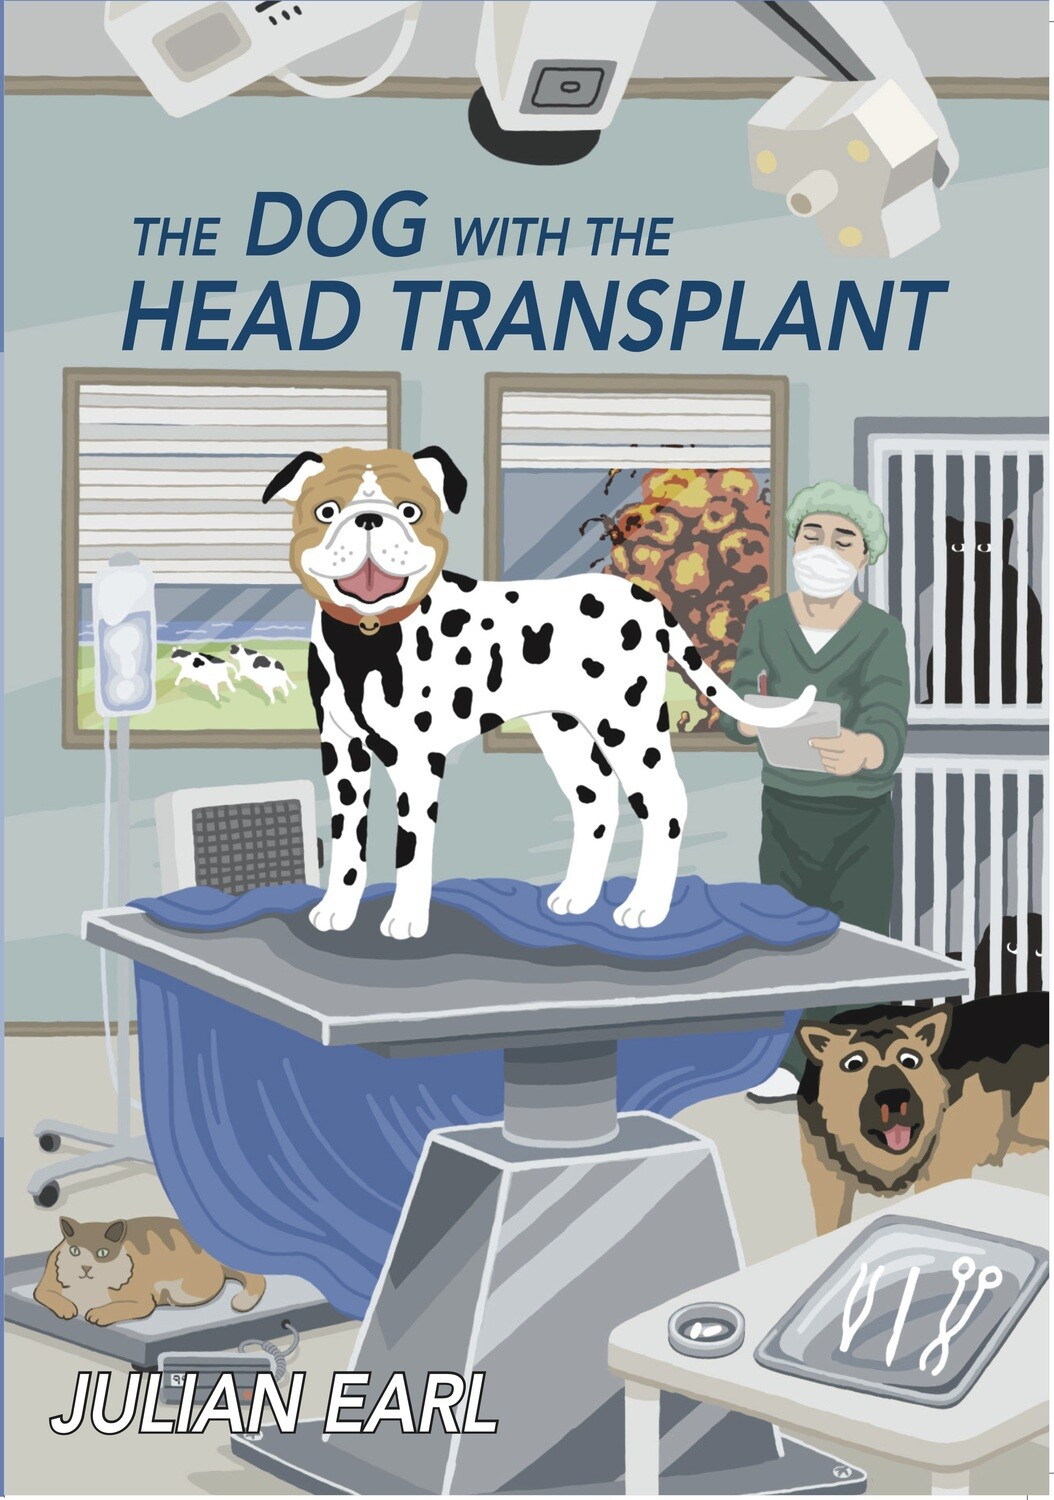 The Dog with the Head Transplant (hardback edition)